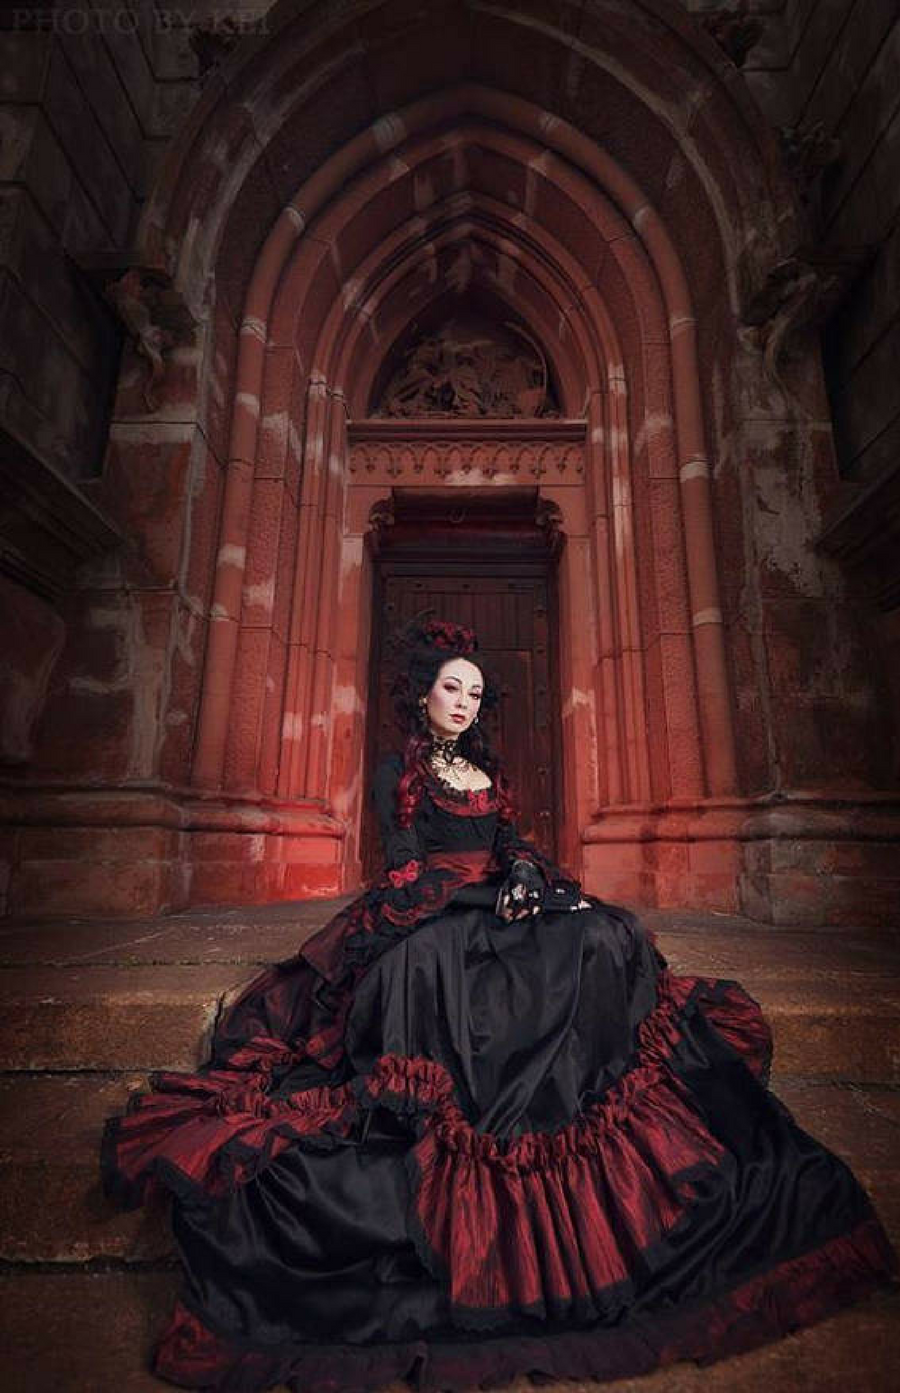 I love this gorgeous gothic wedding dress gothic clothing gothic